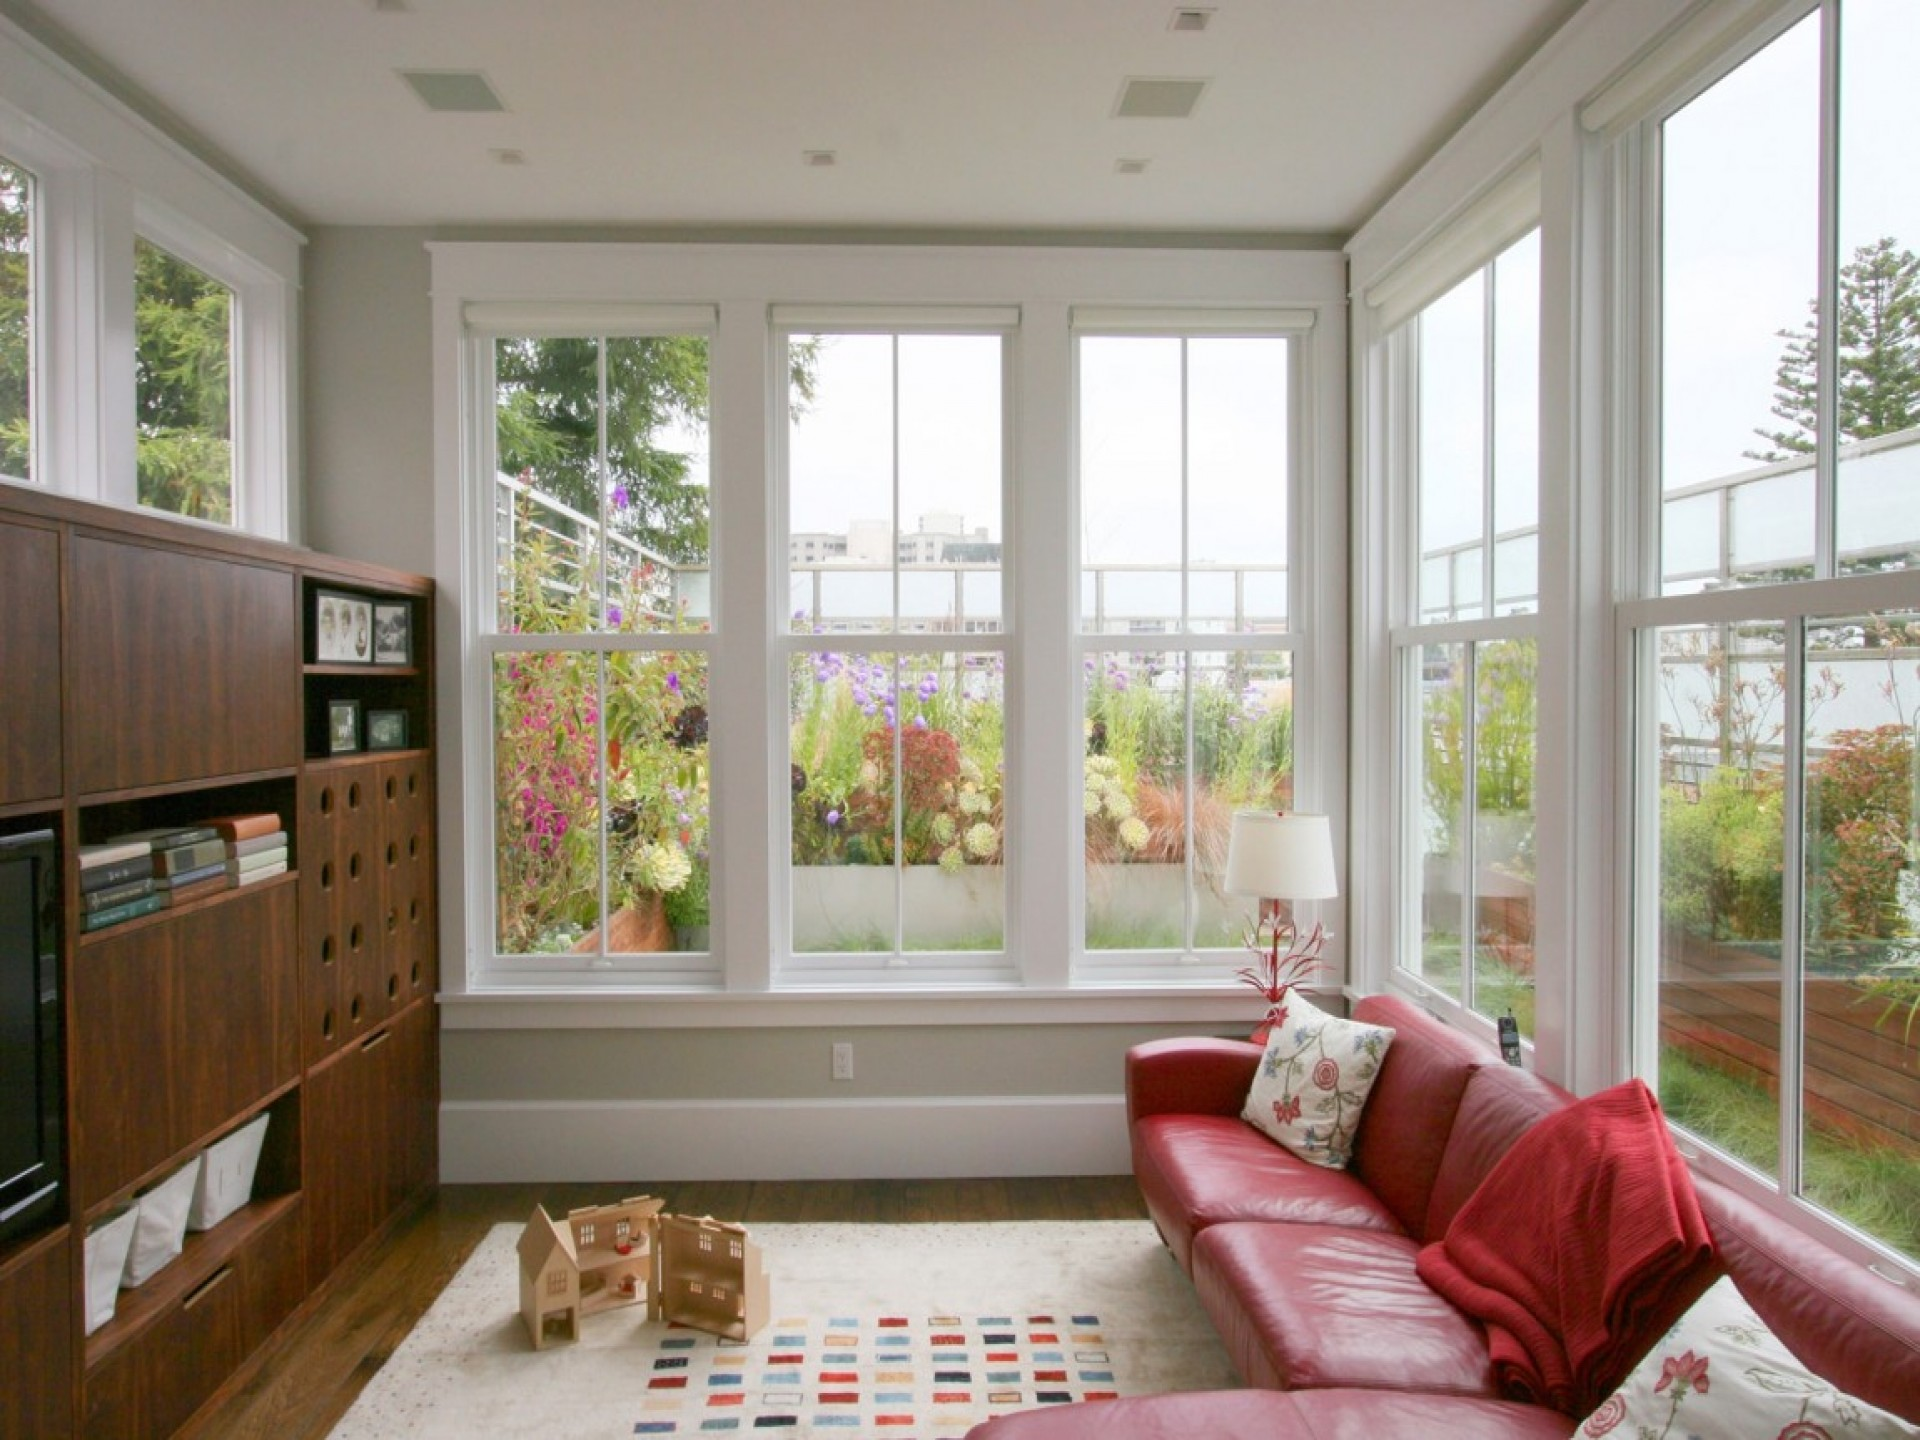 Top 10 Brilliant Ideas for Small Living Rooms - Tiny ...